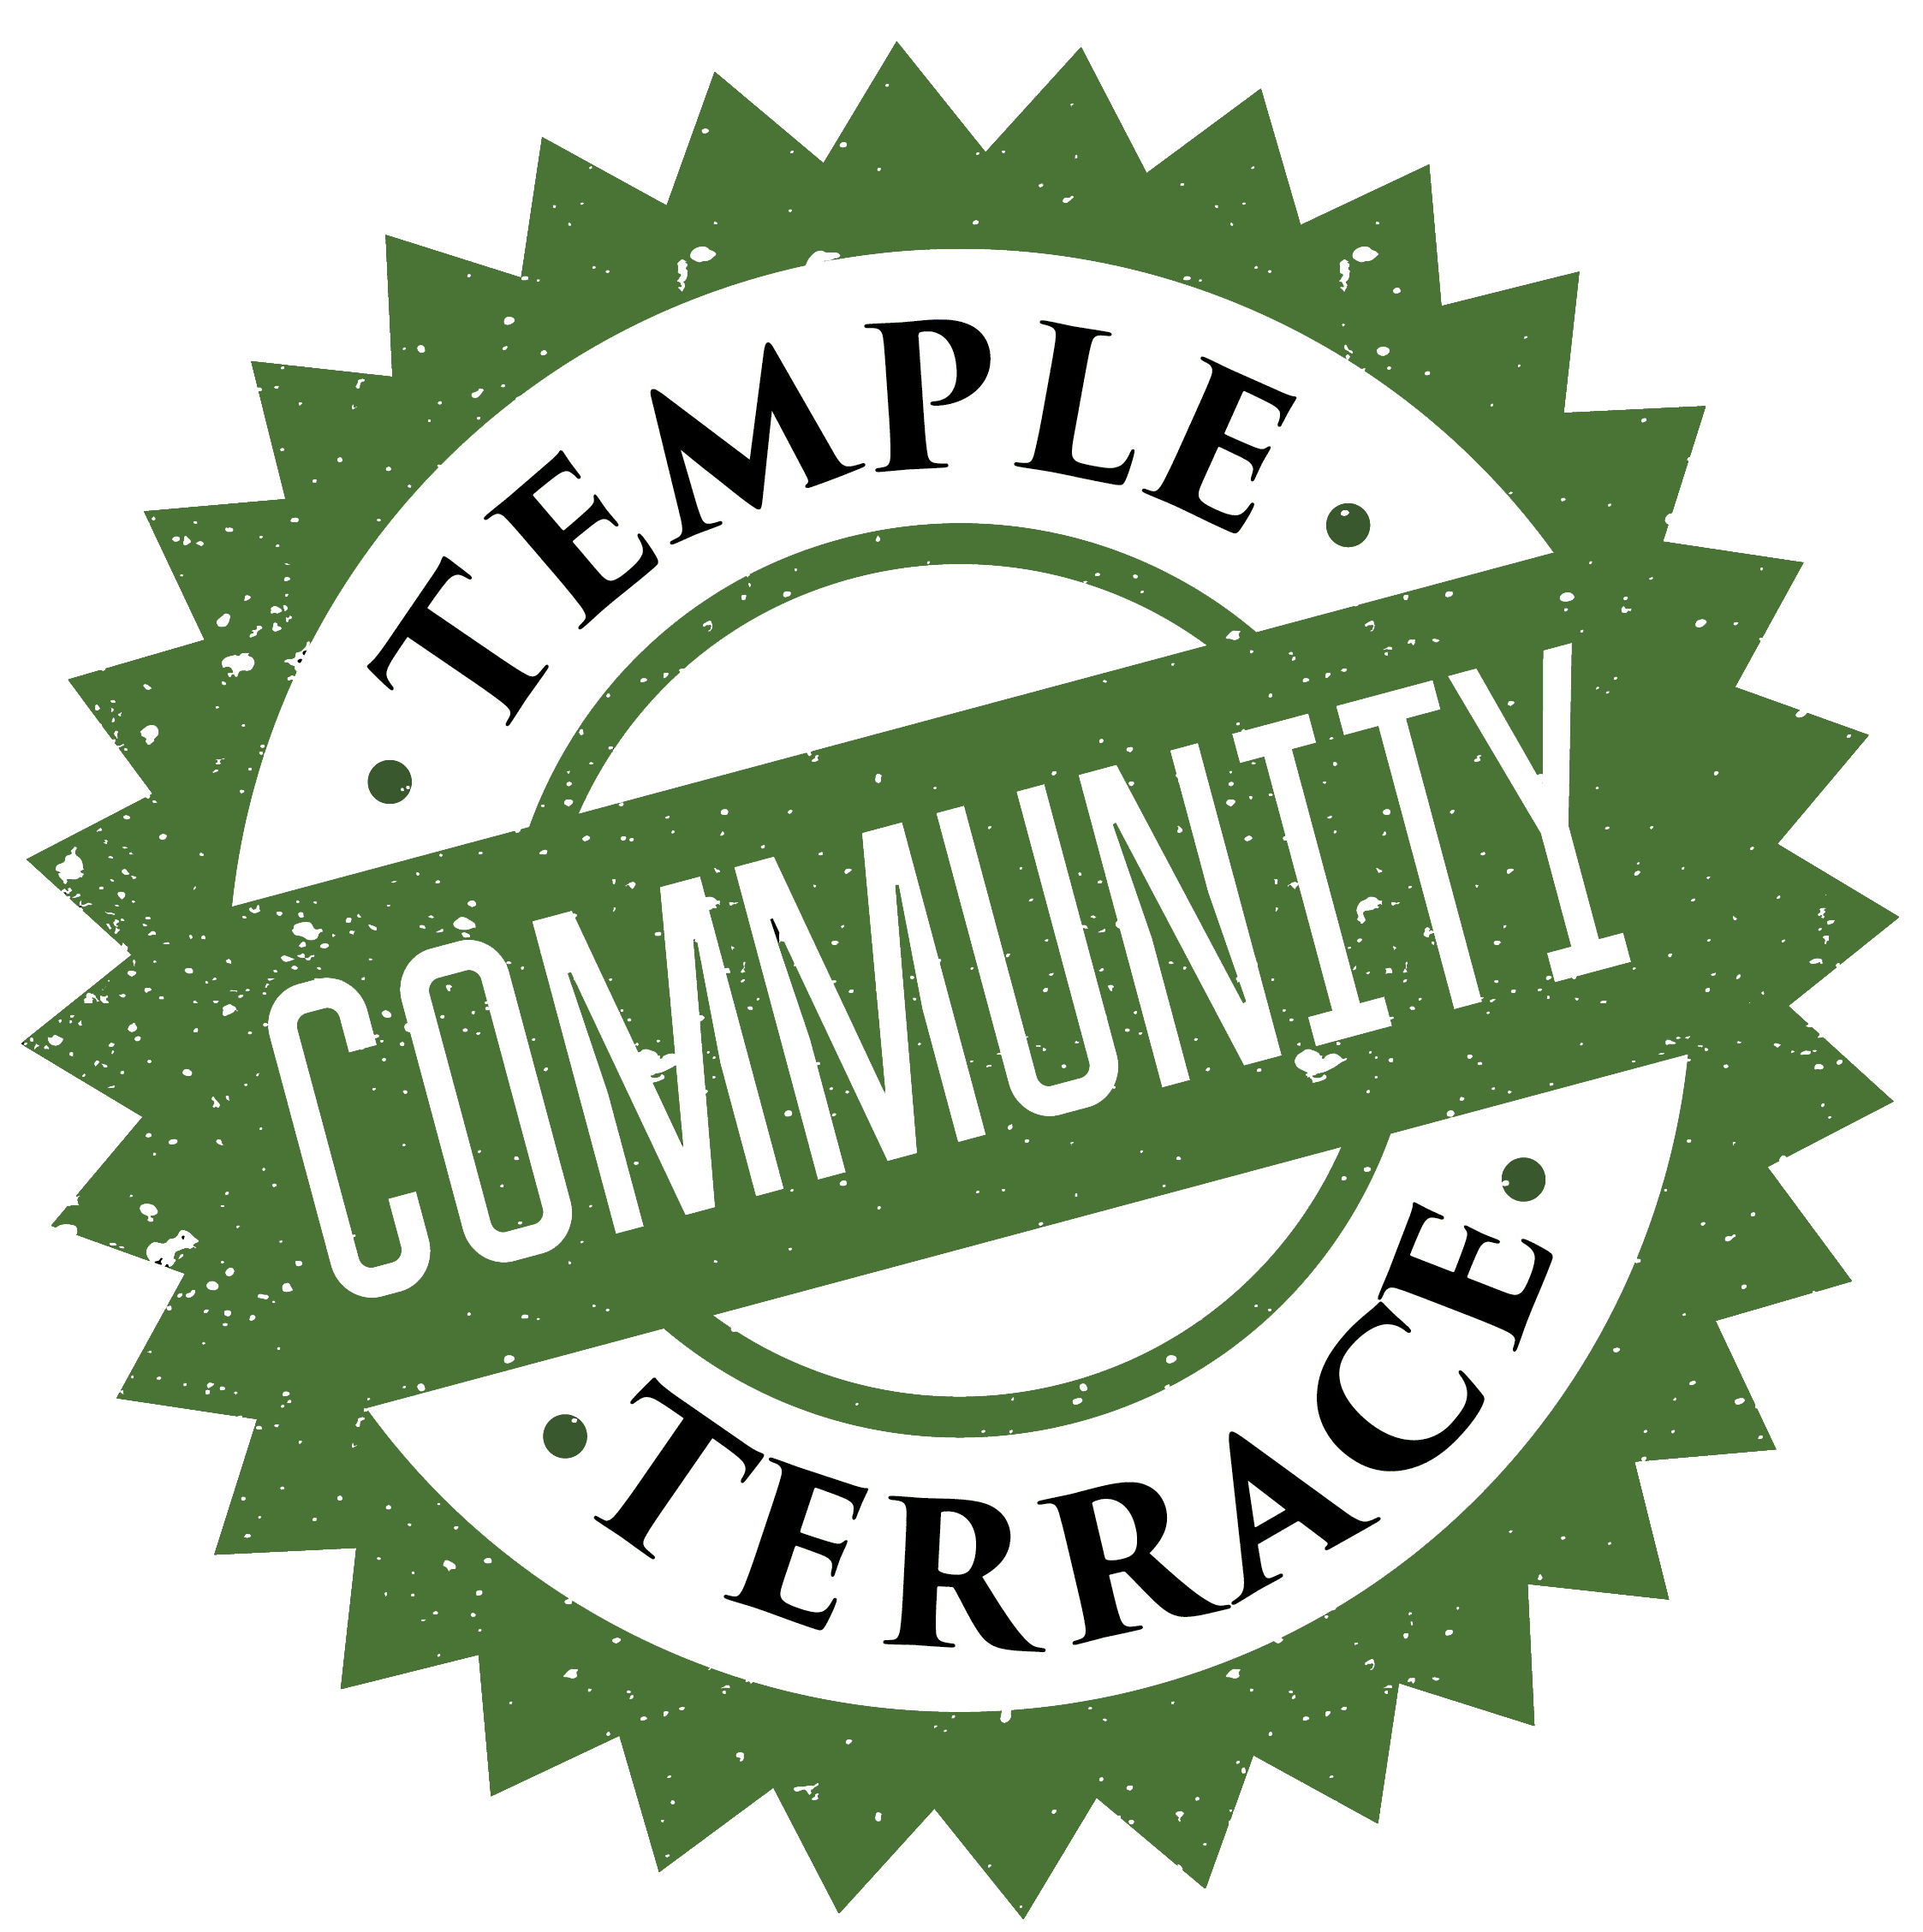 Temple Terrace Community